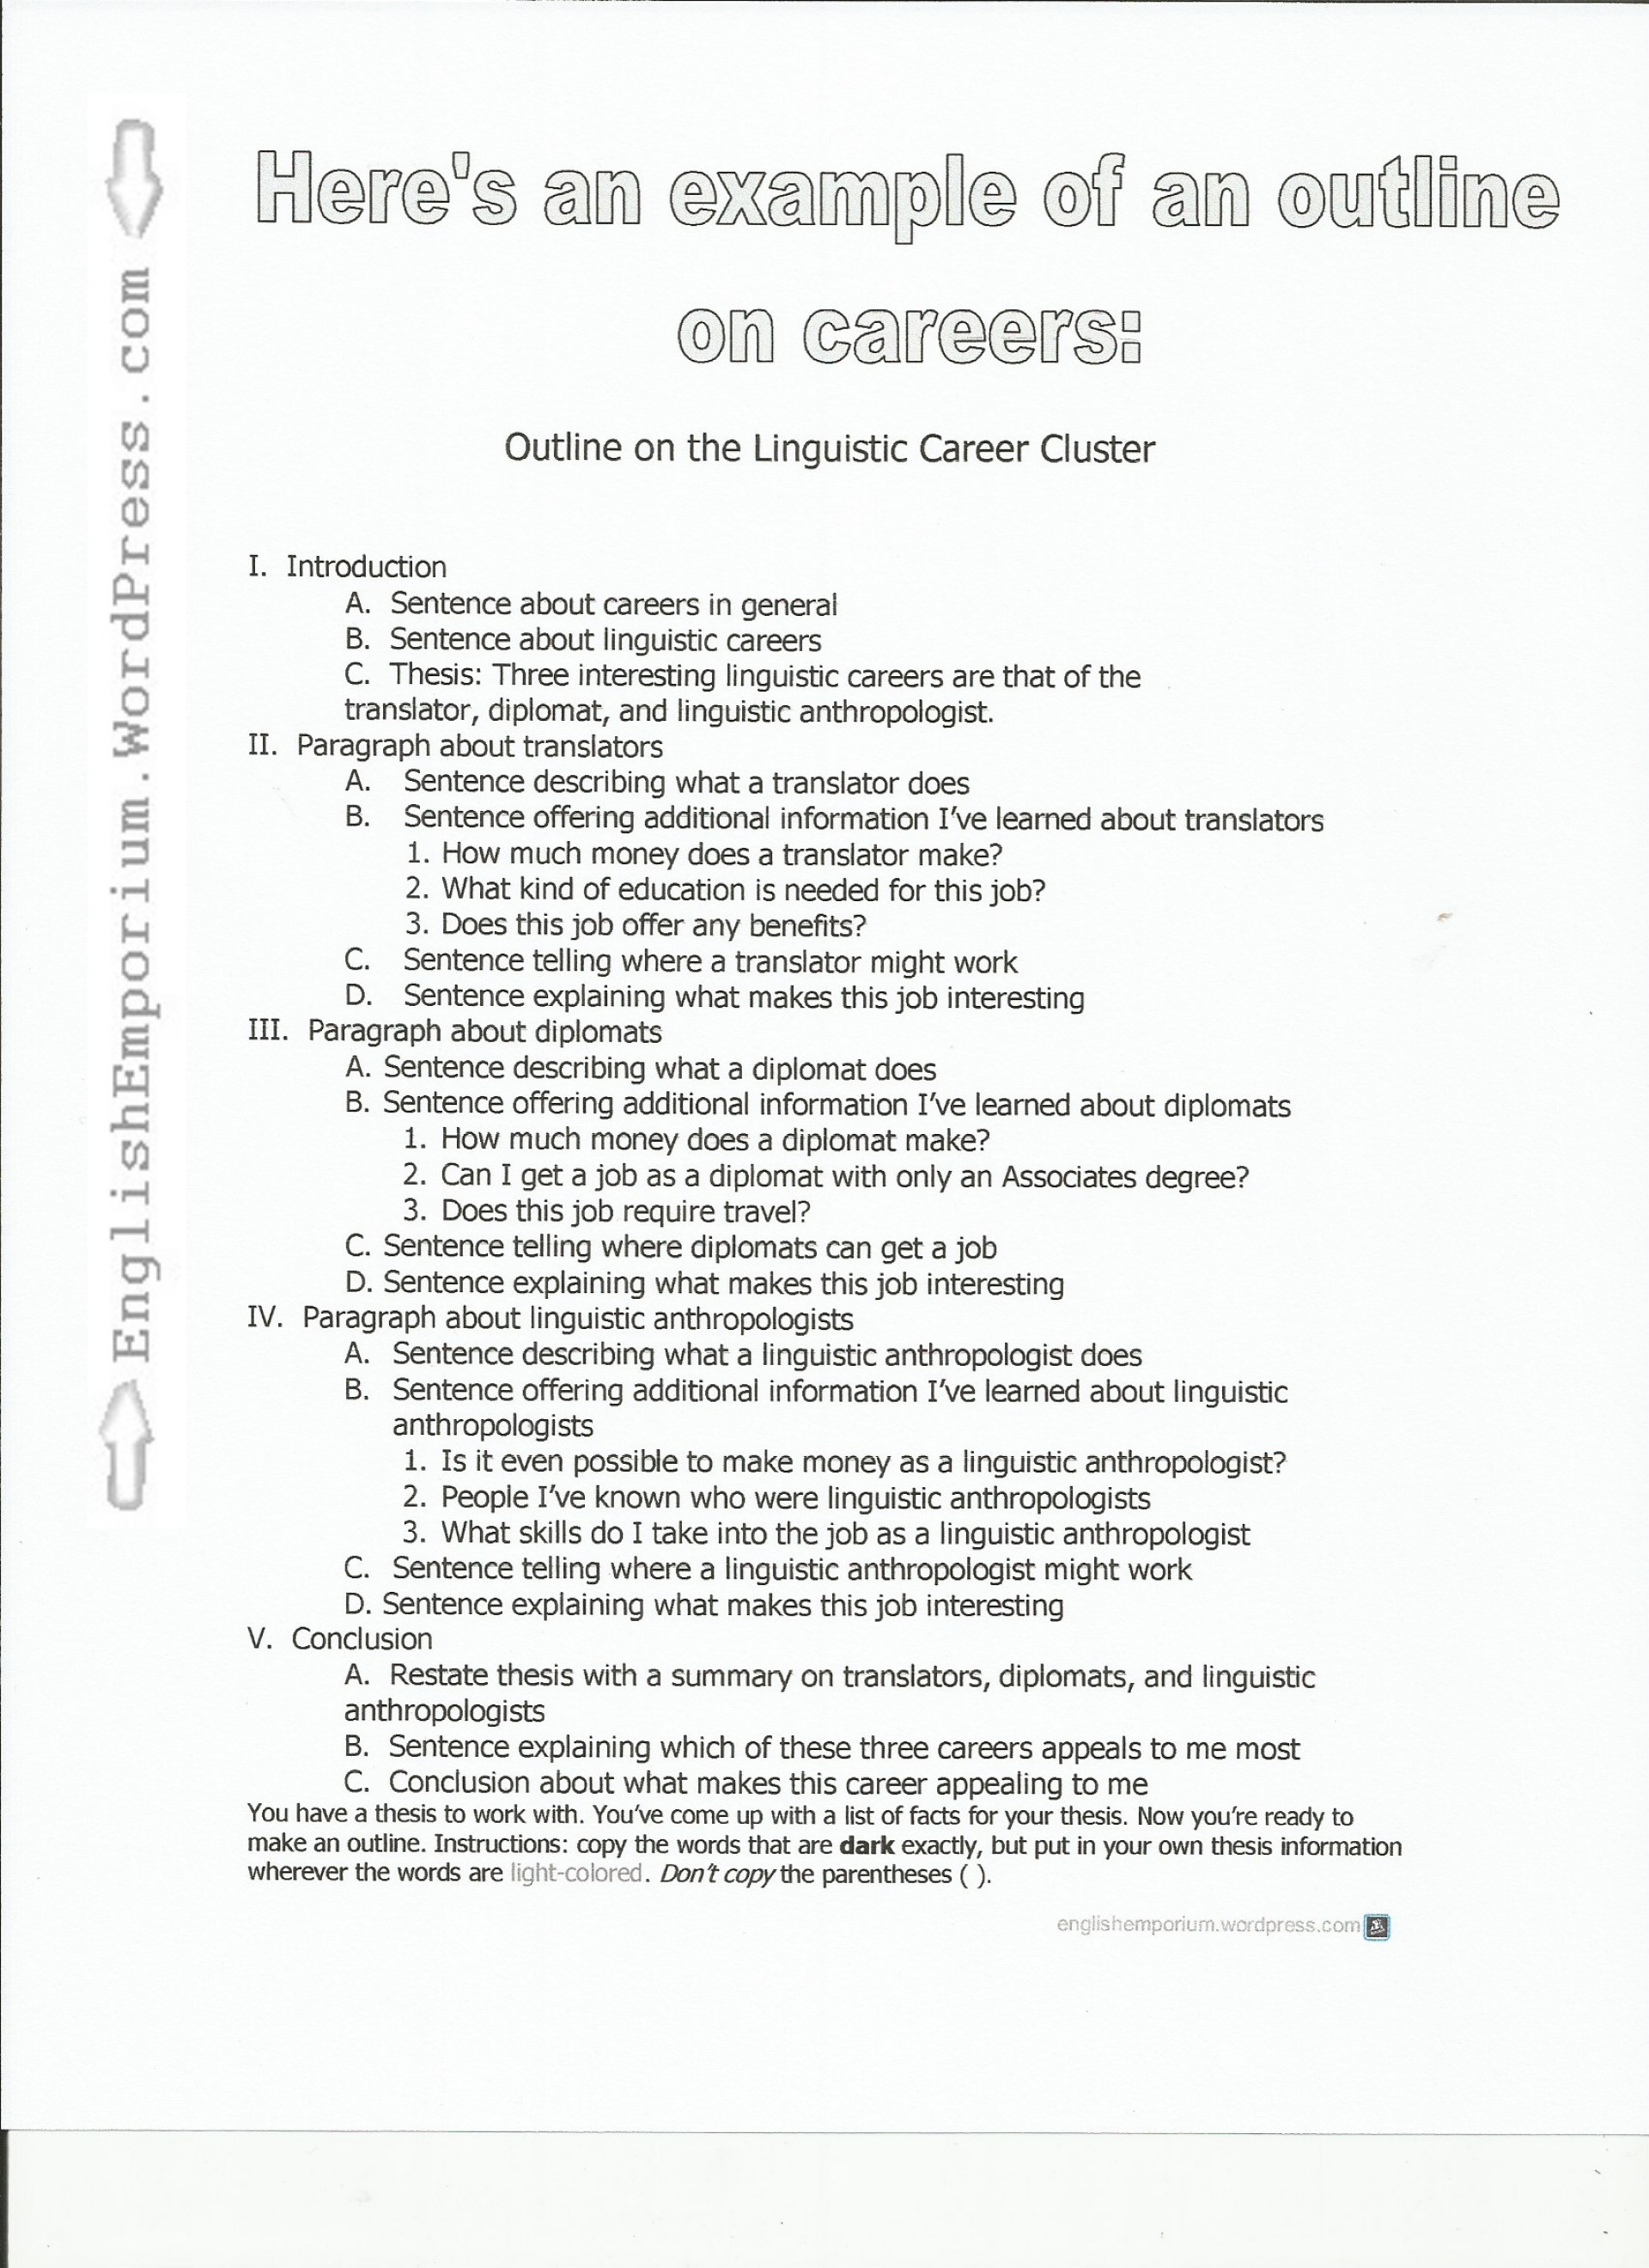 018 Research Paper Outline Of On Careers Pg Dreaded A Introduction Apa Style 1920